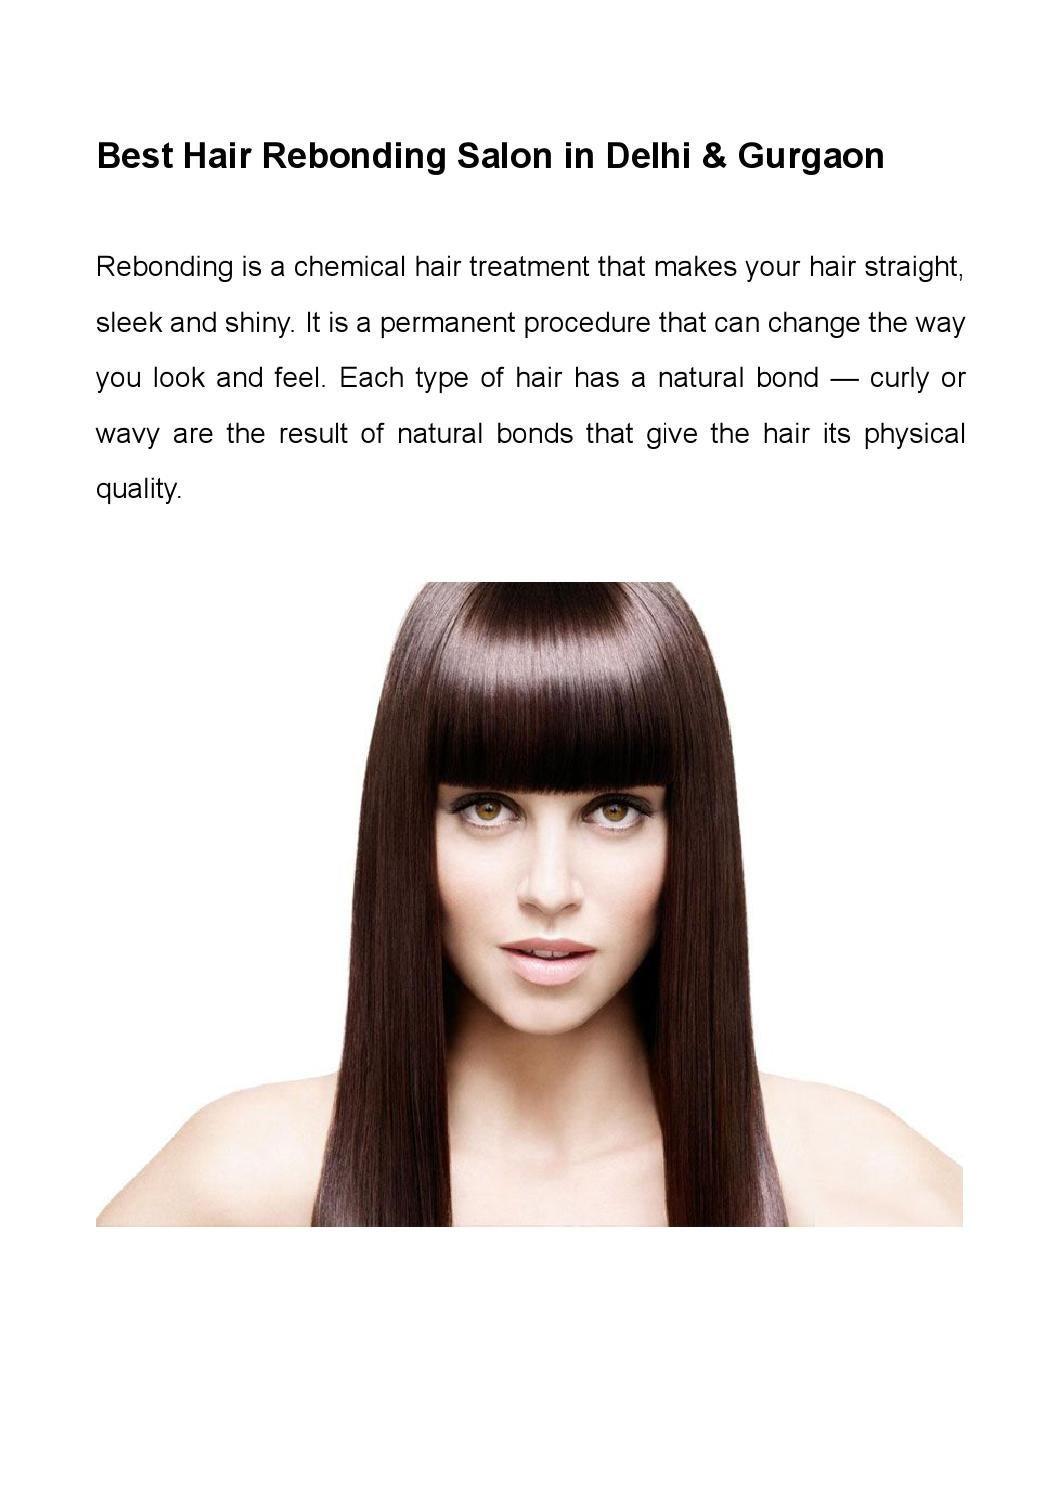 Best Hair Rebonding Salon In Delhi Gurgaon By Monsoon Salon Spa Issuu